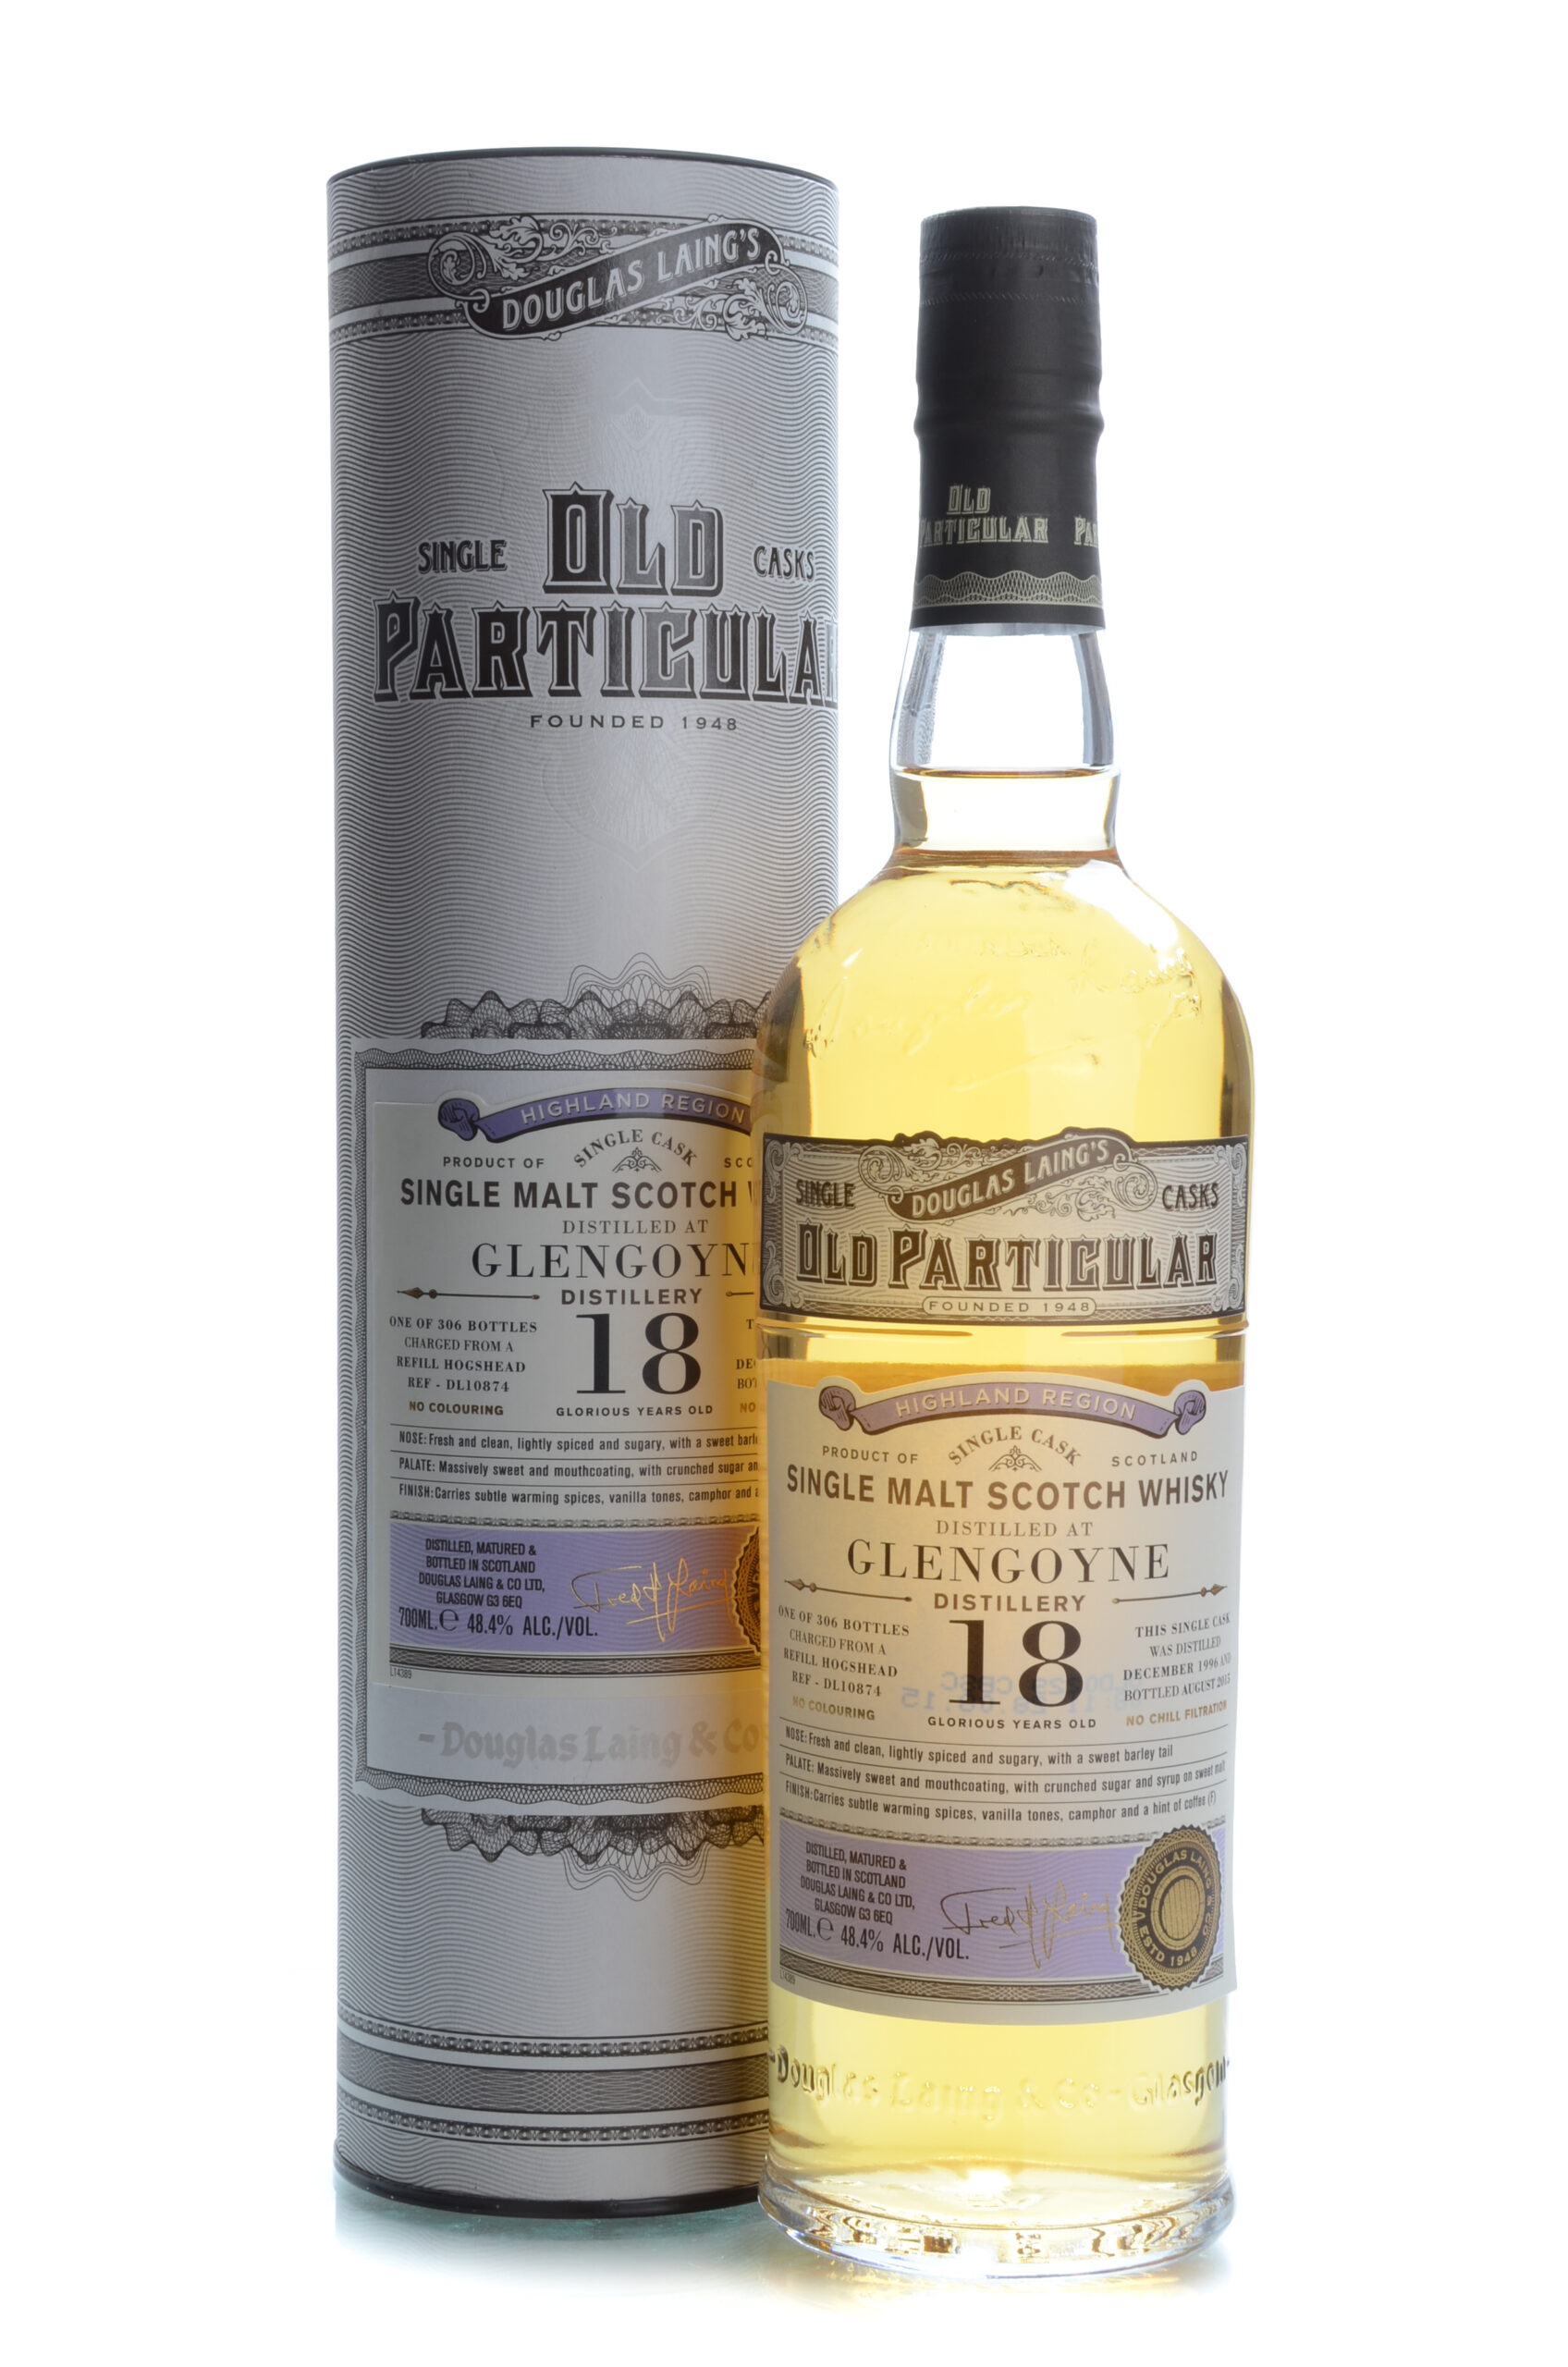 Old Particular Glengoyne 18 years